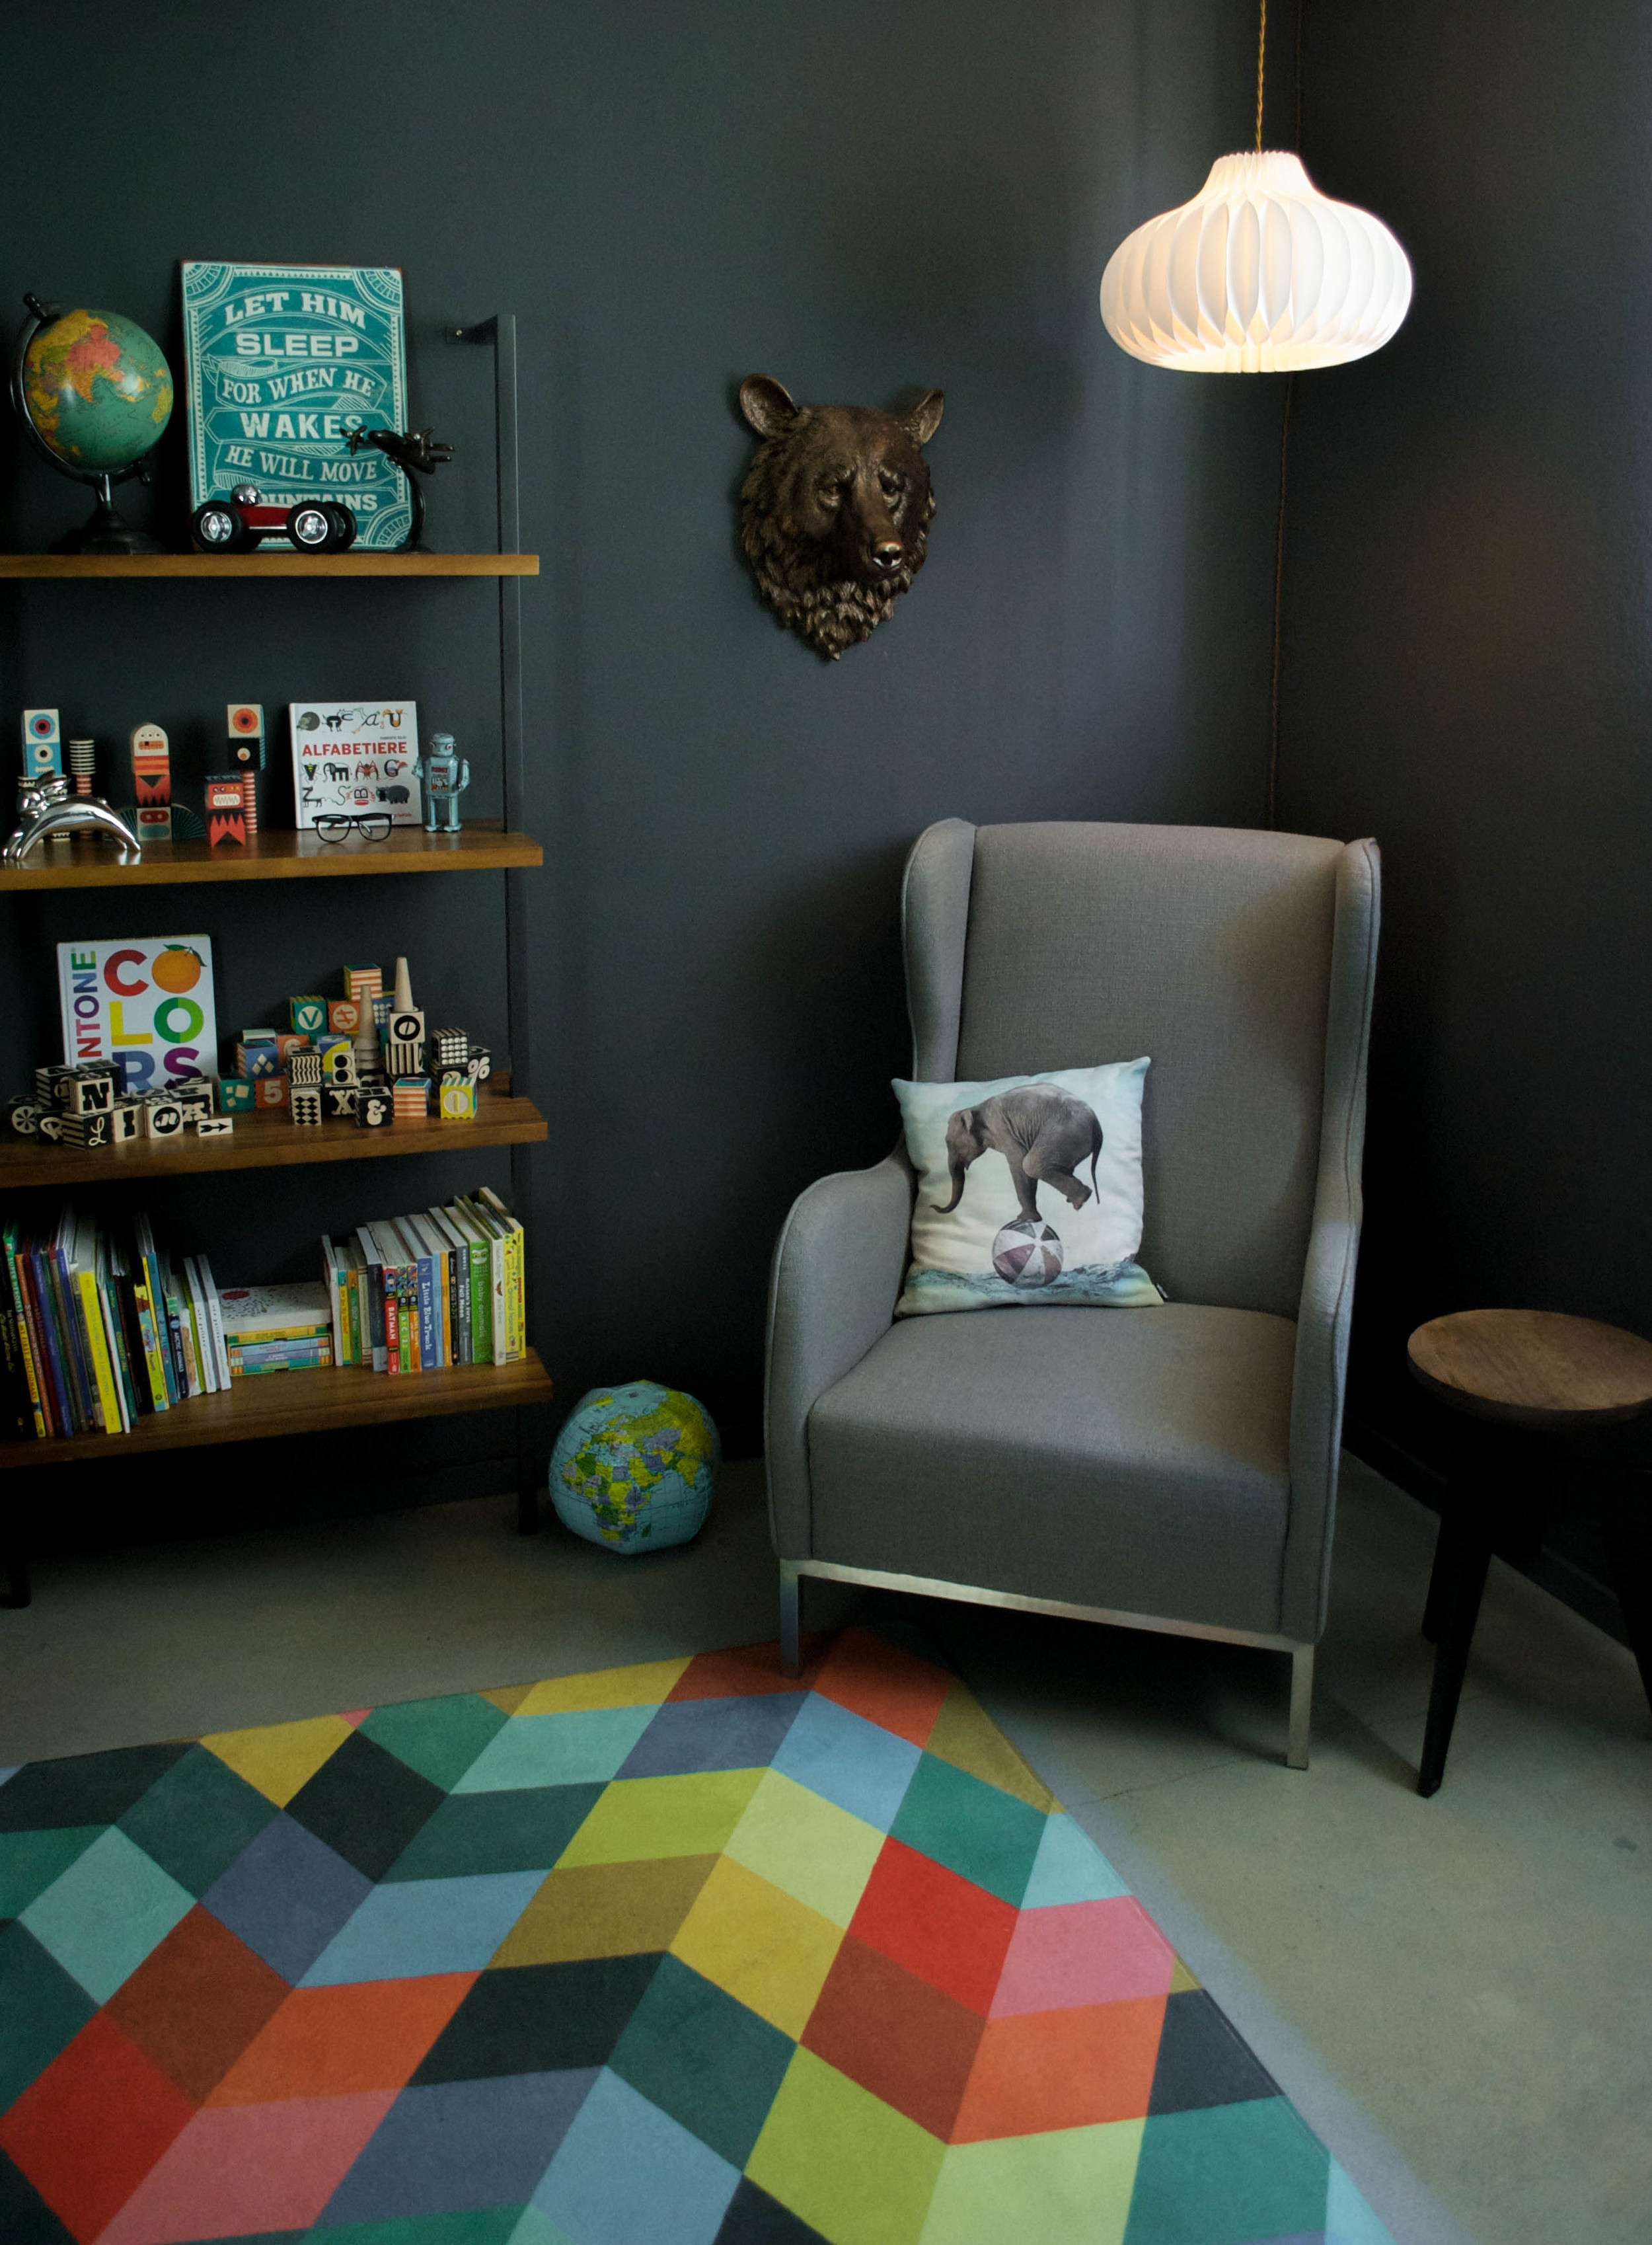 A great chair to curl up and read a bedtime story.